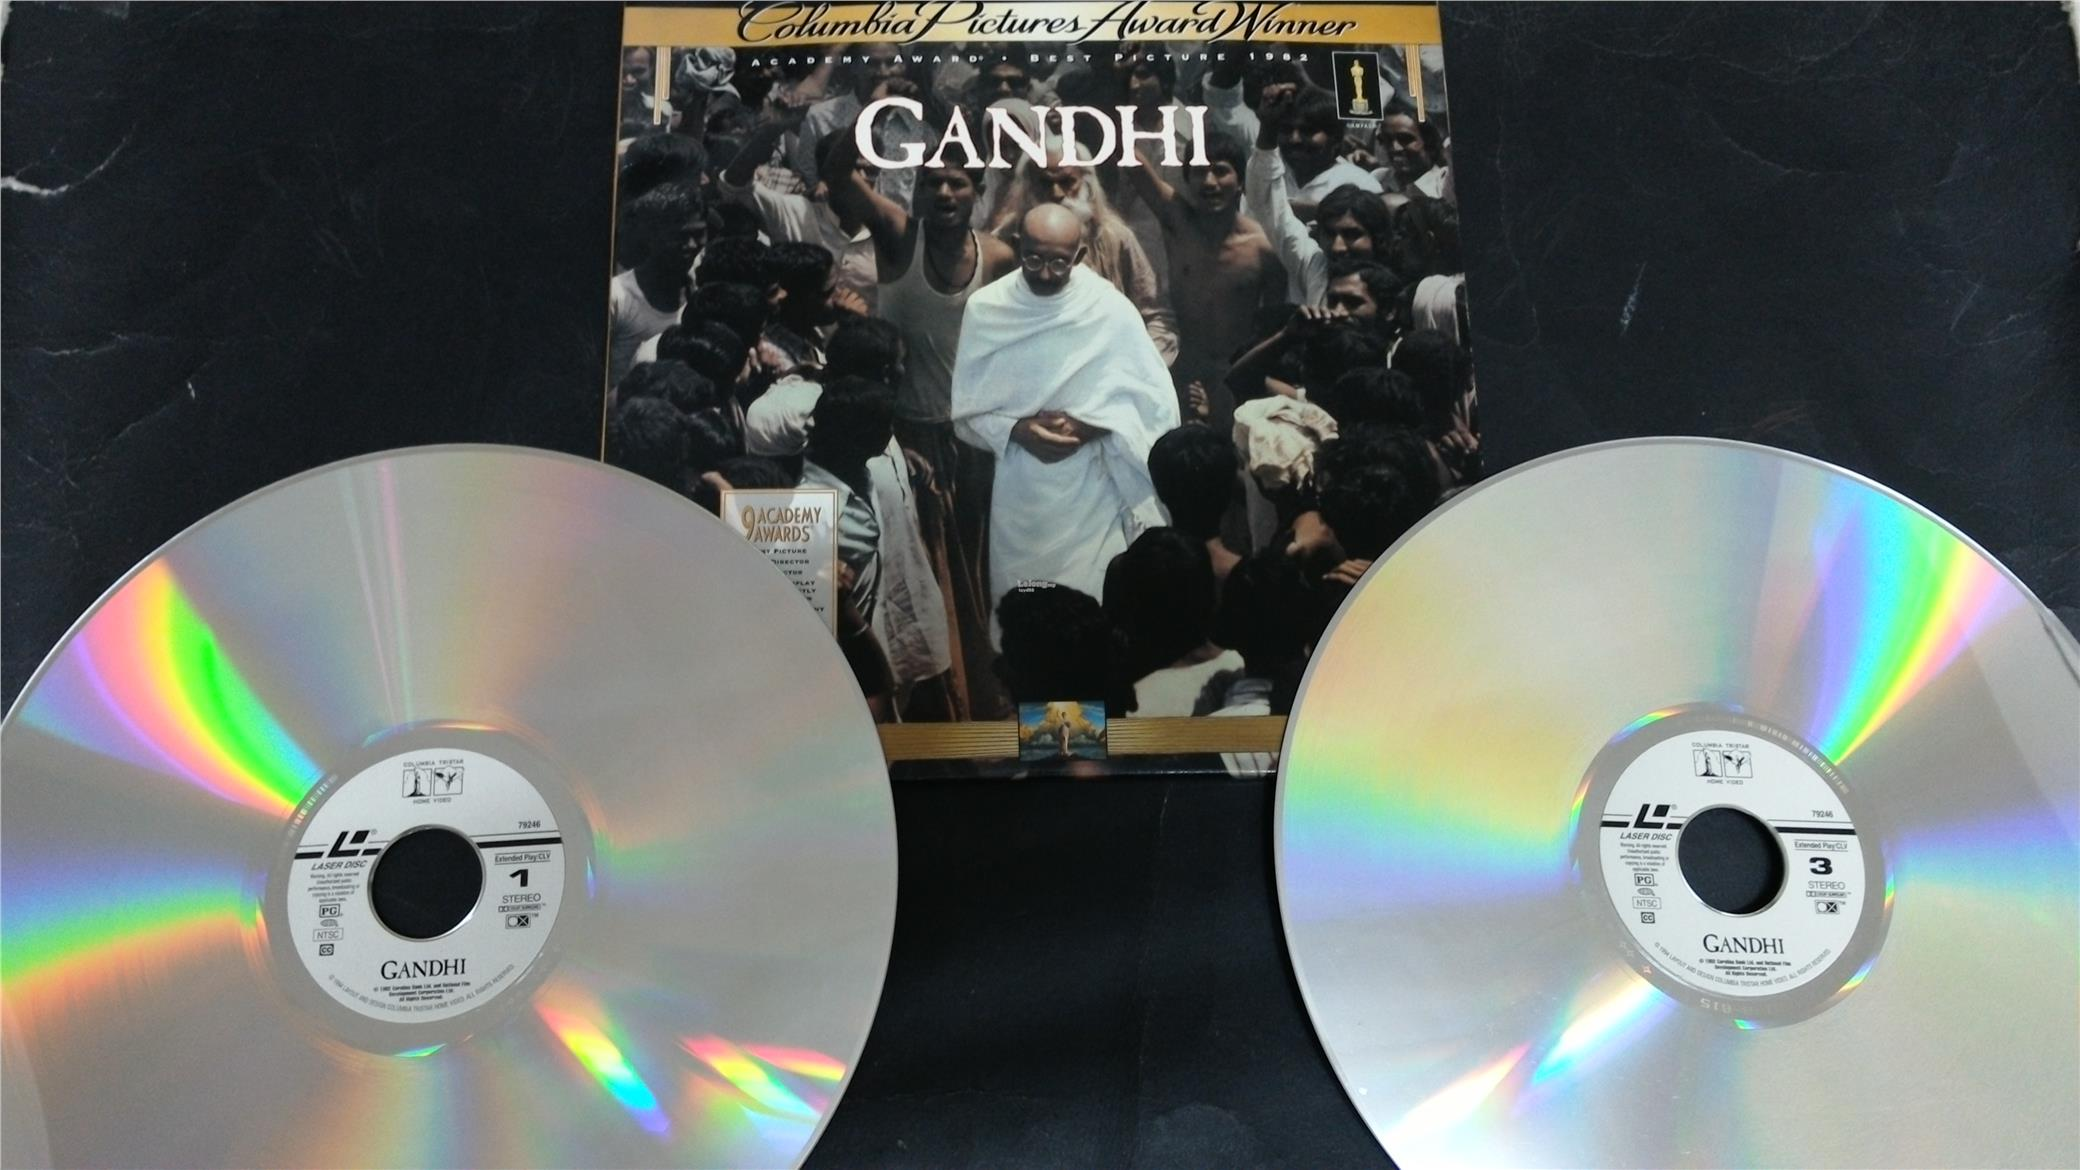 GANDHI THE MOVIE LASER DISC LD